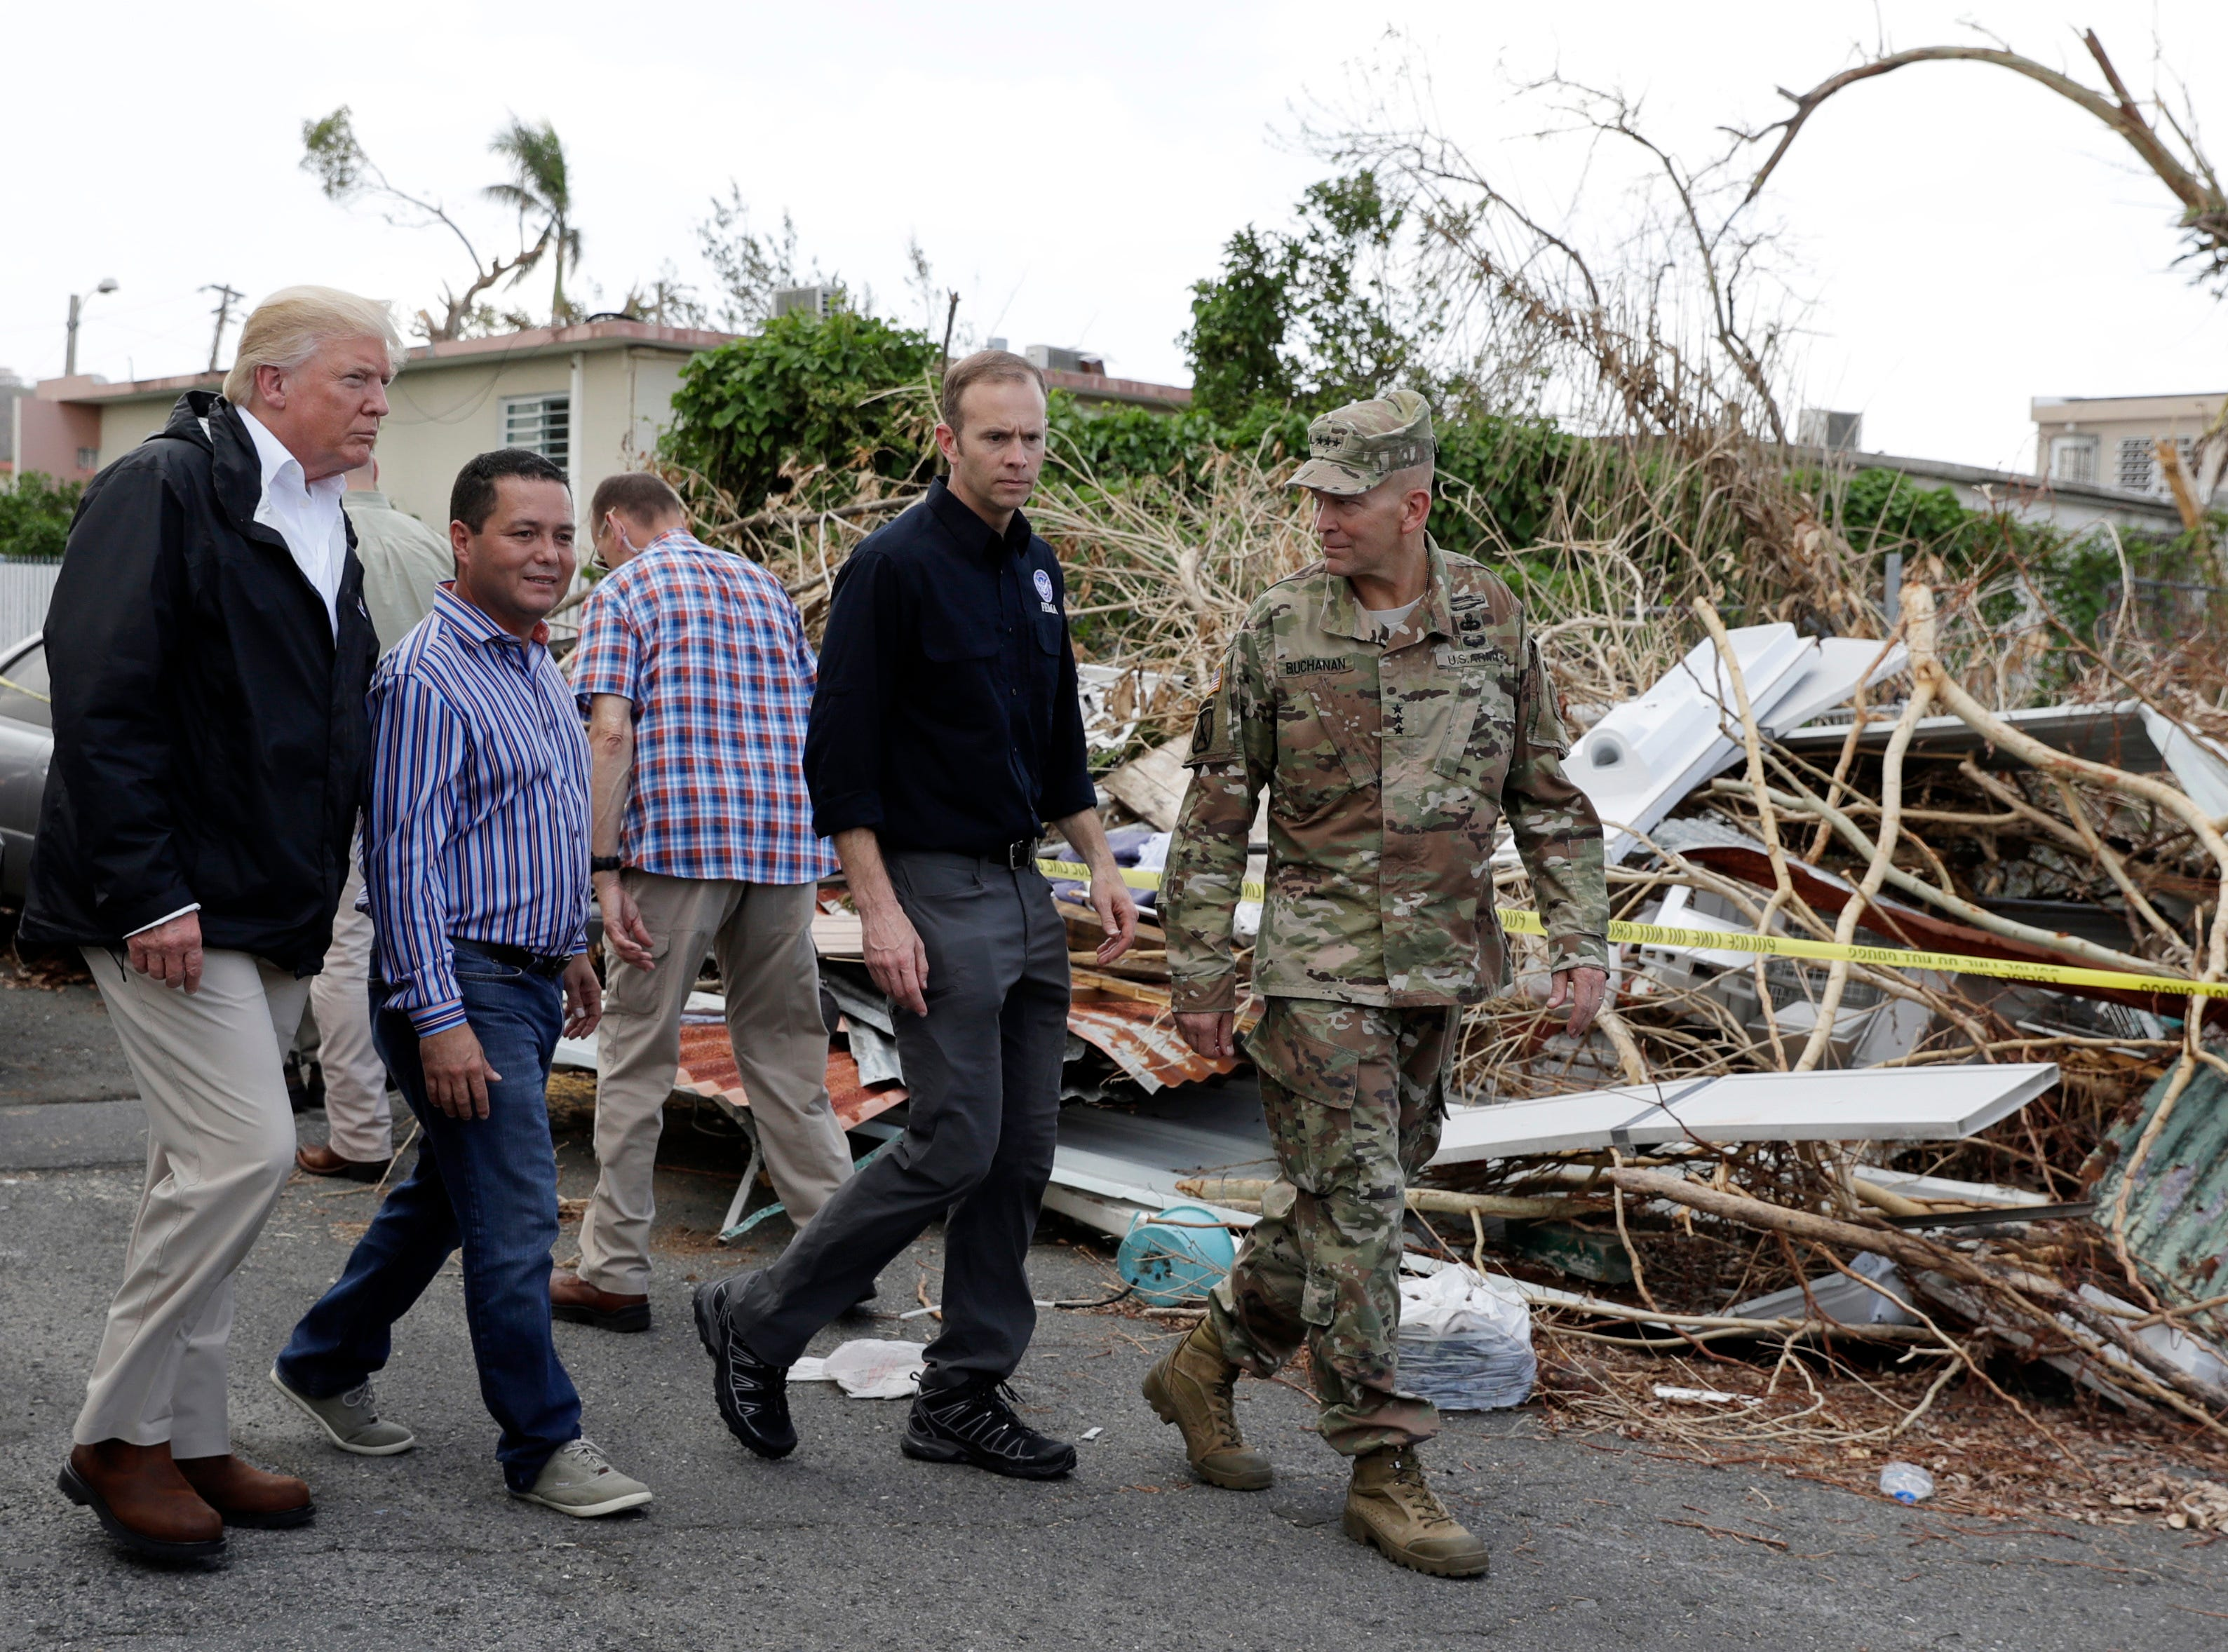 After FEMA's soul searching on Puerto Rico, no more excuses